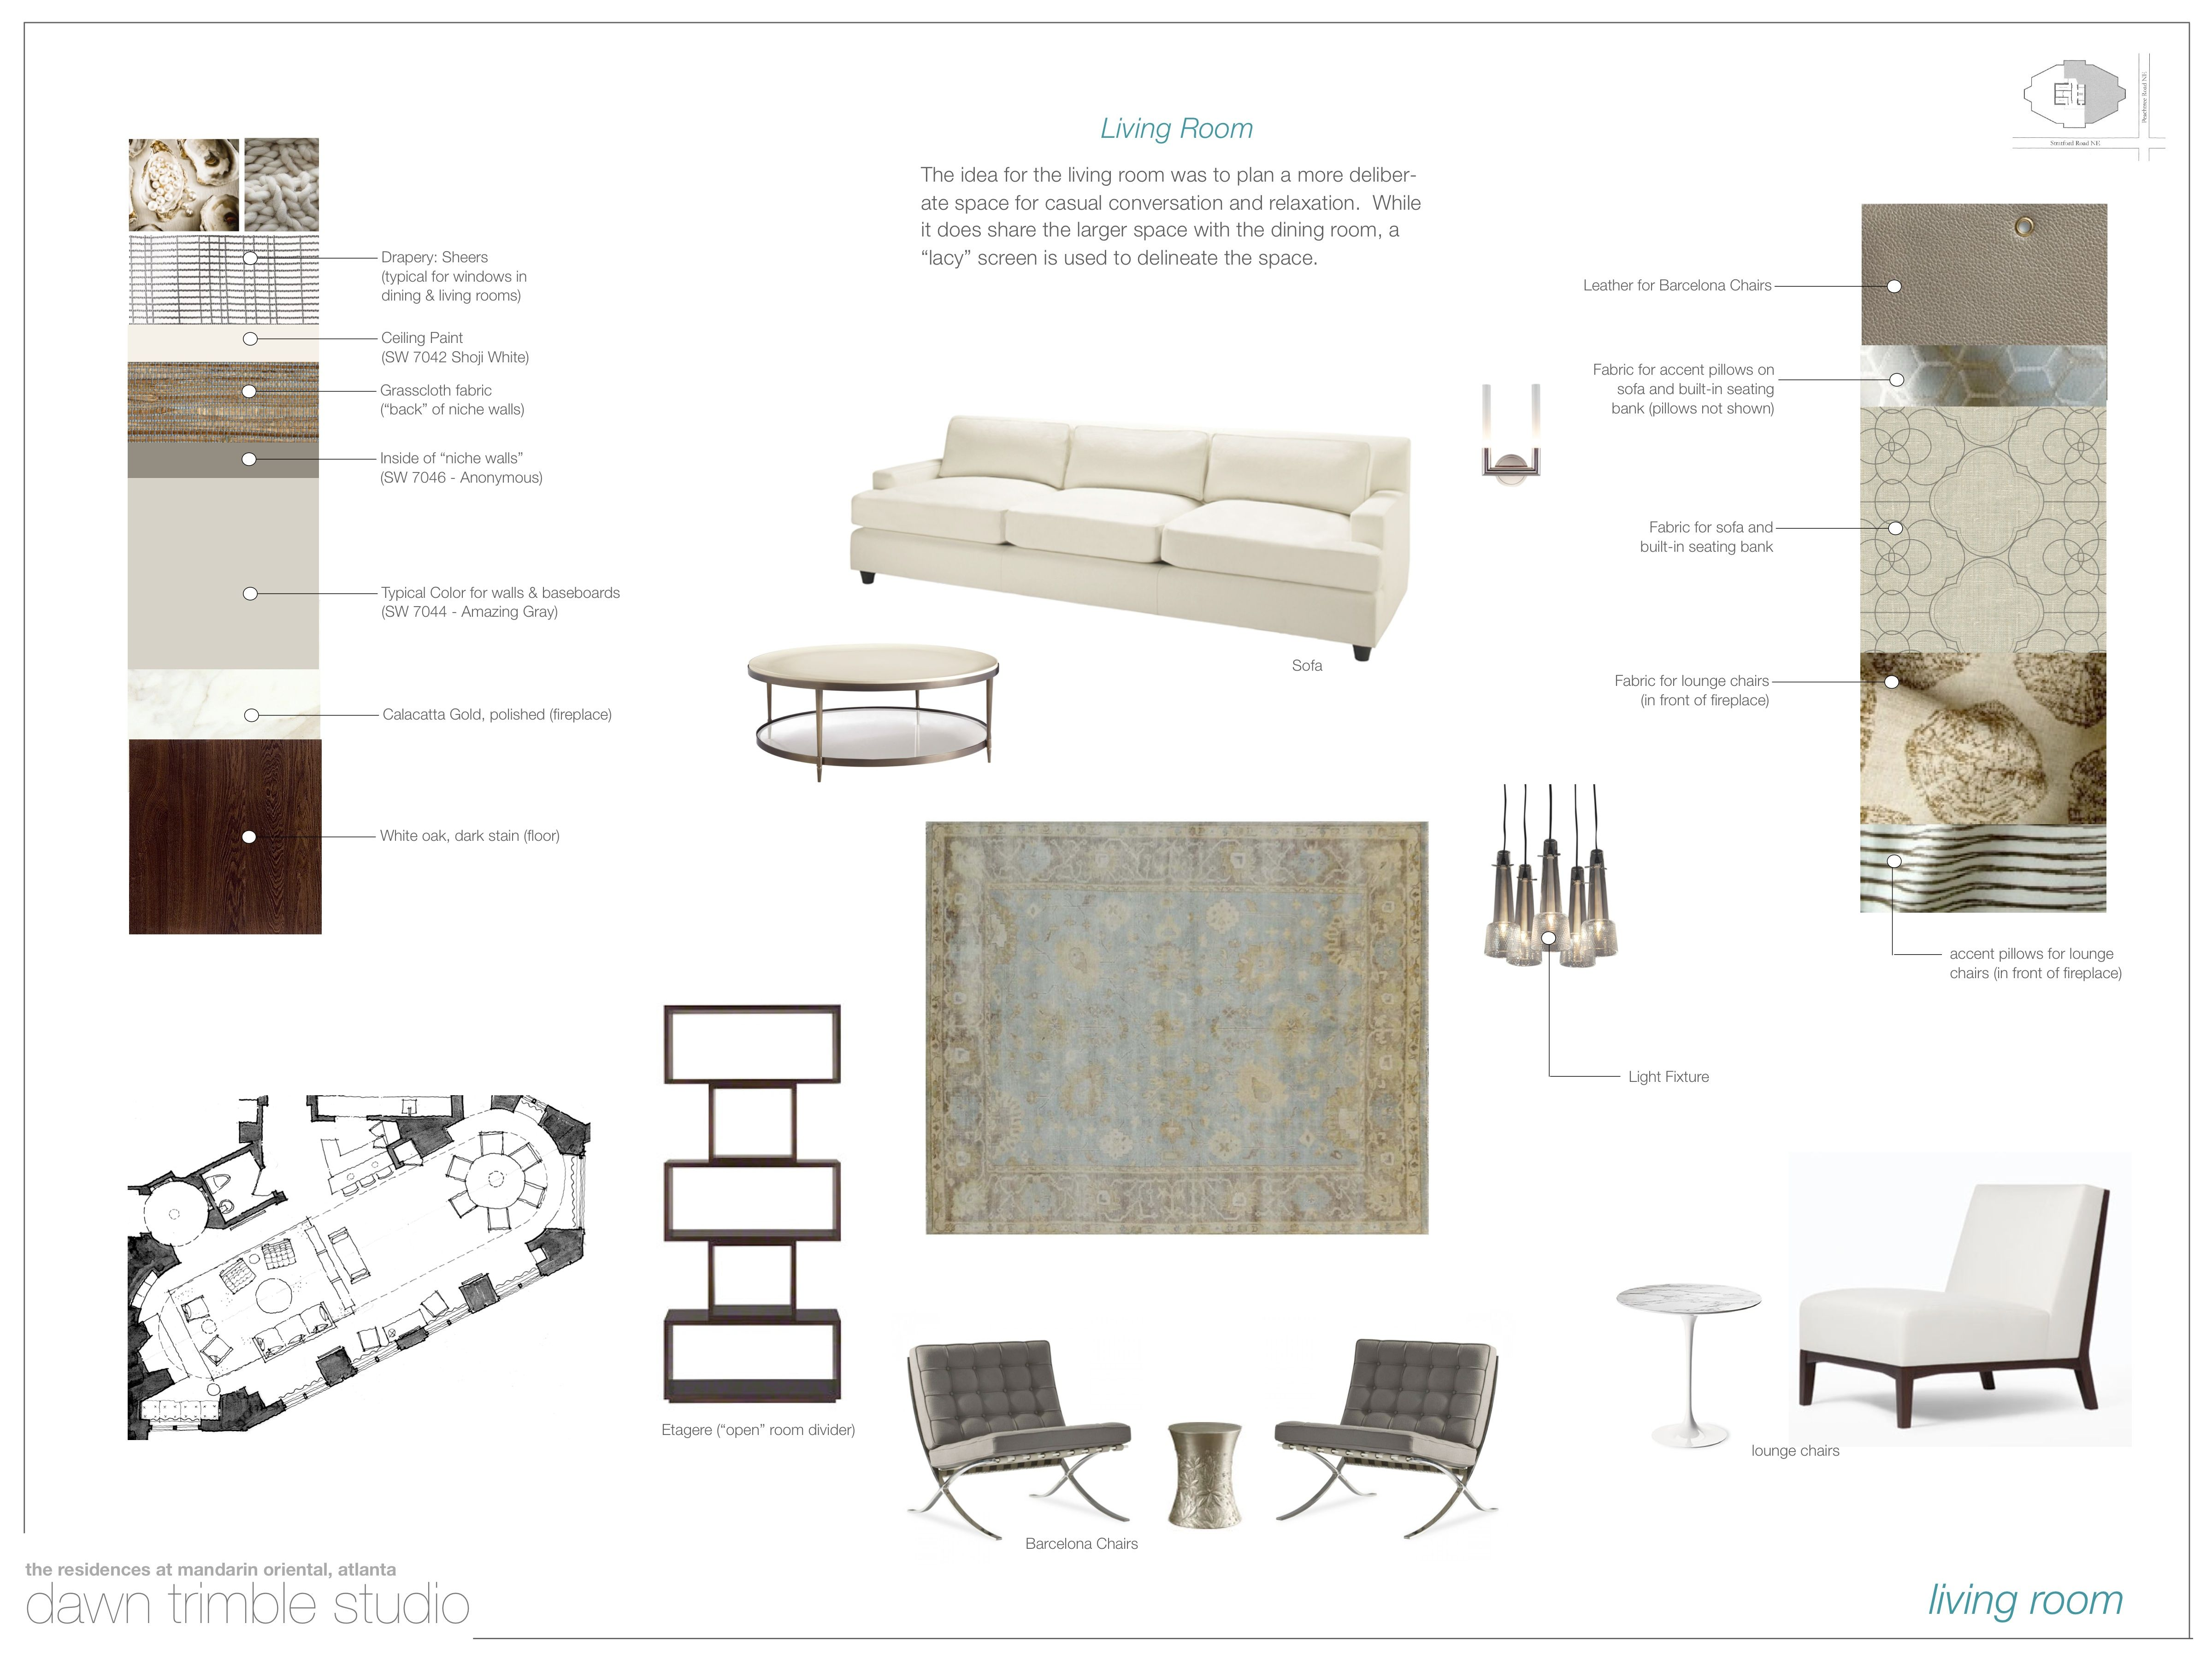 The Living Room concept